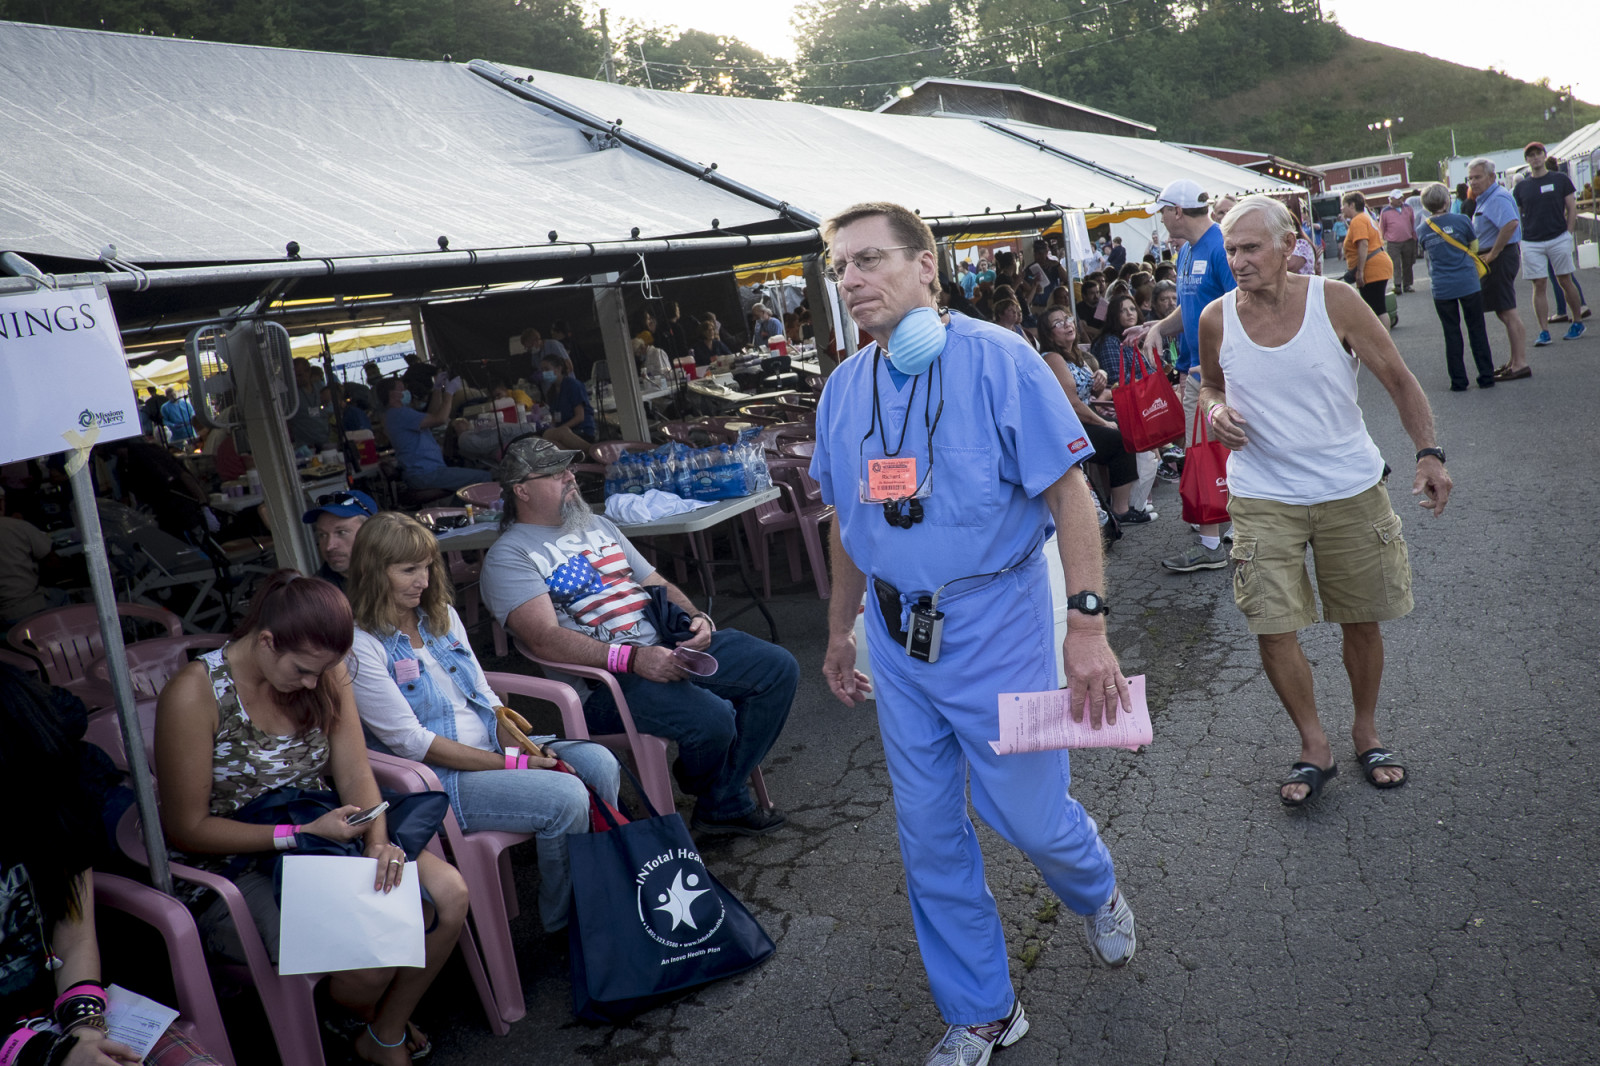 A dentist walks past waiting patients at the 16th annual Remote Area Medical (RAM), clinic in Wise, Virginia, U.S., on Friday, July 17, 2015. Photo: Pete Marovich/Bloomberg